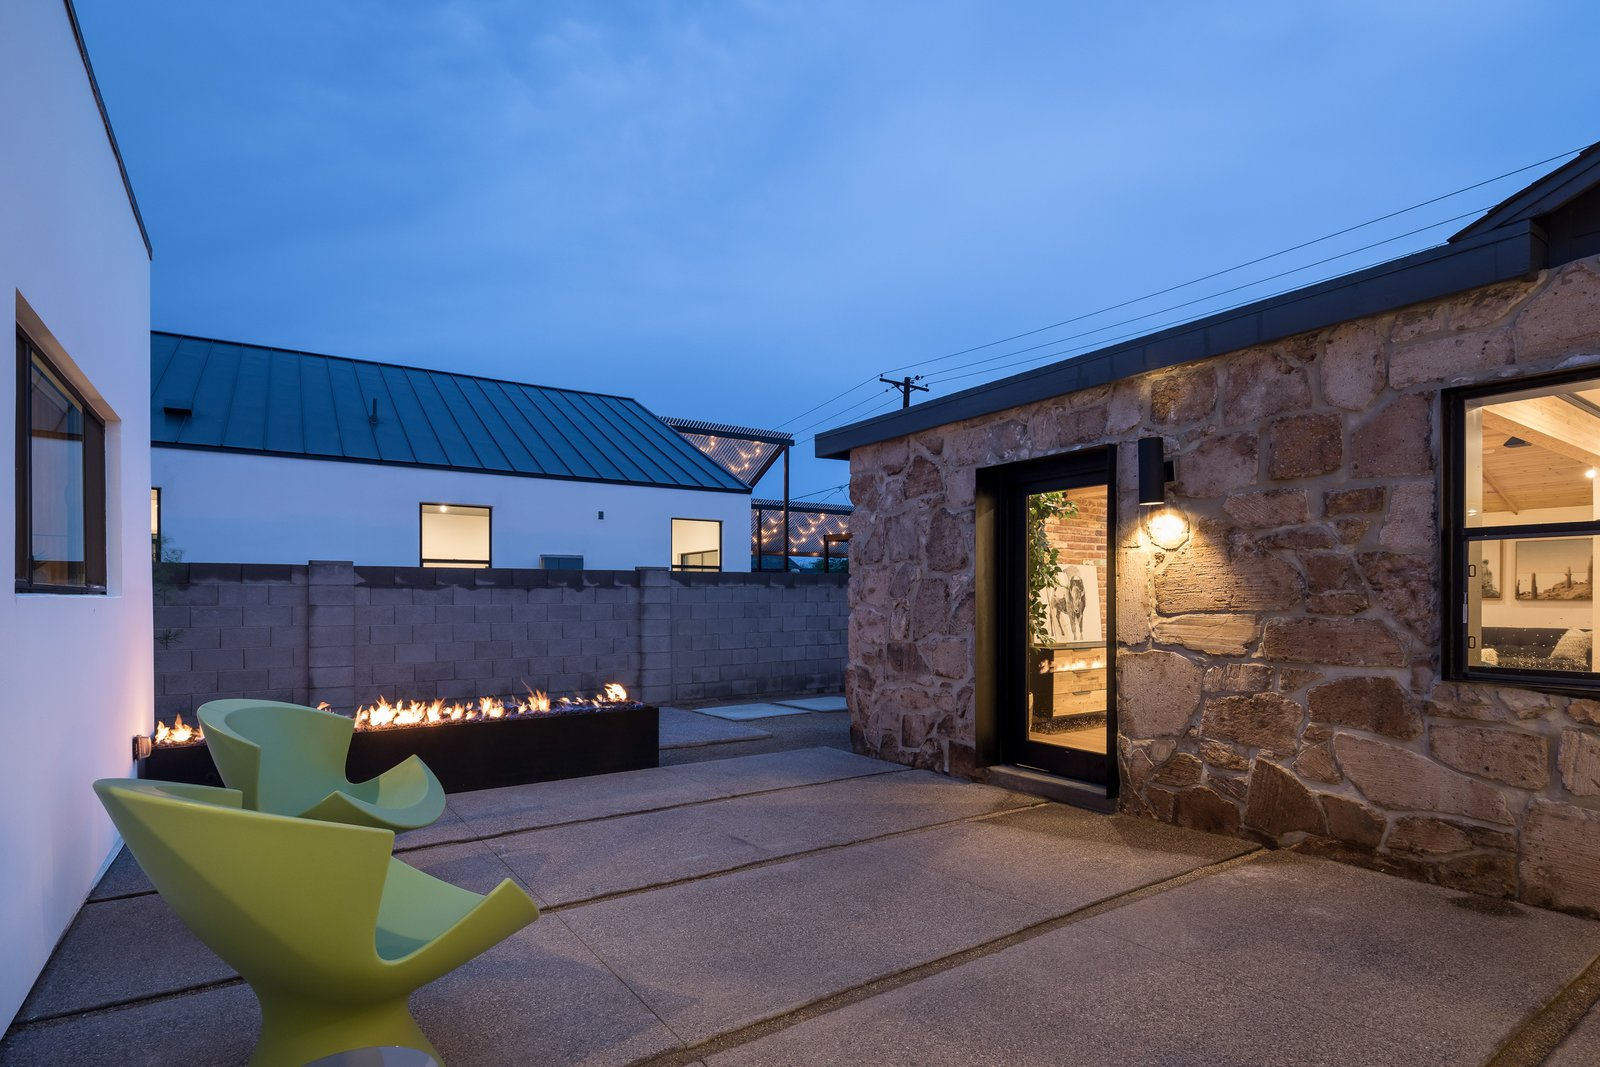 Outdoor, Concrete Patio, Porch, Deck, Back Yard, and Landscape Lighting  Photo 12 of 13 in In Arizona, a Modern Cube and Tumbledown 1930s Shack Make an Unlikely Couple